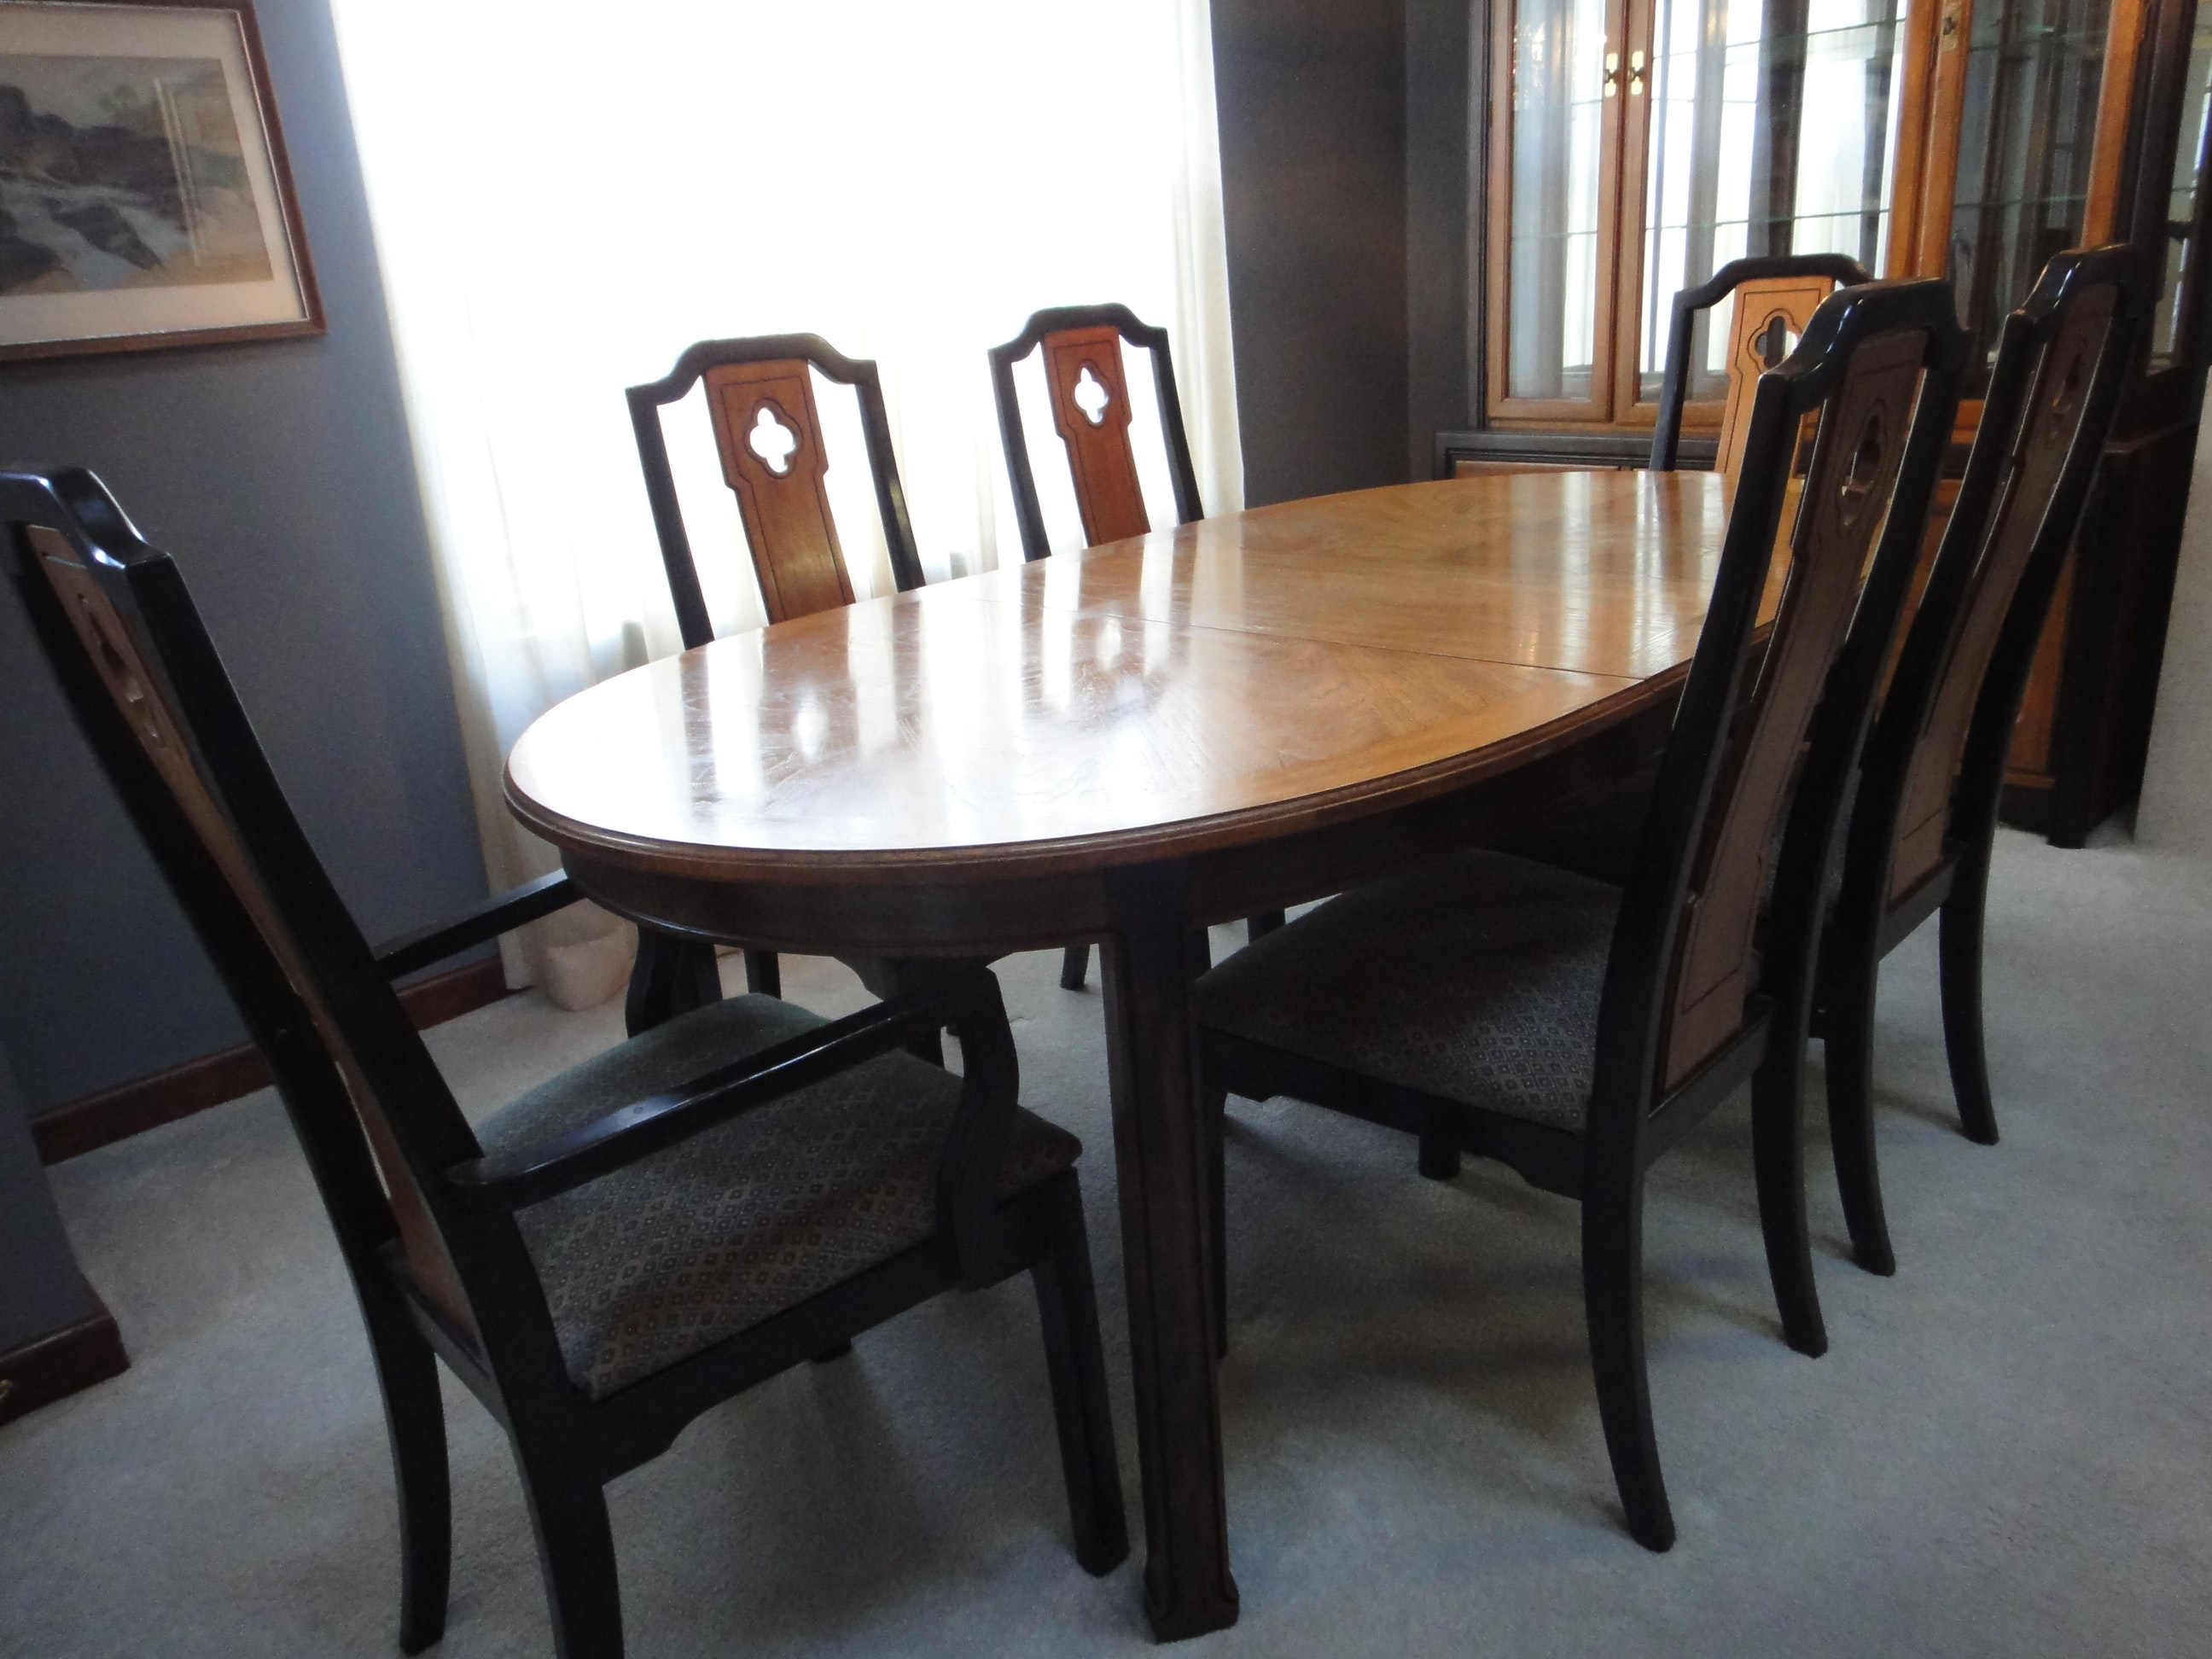 Mid Century Thomasville Dining Room Table amp 6 Chairs EBTH : DSC07082JPGixlibrb 11 from www.ebth.com size 1400 x 1050 jpeg 196kB